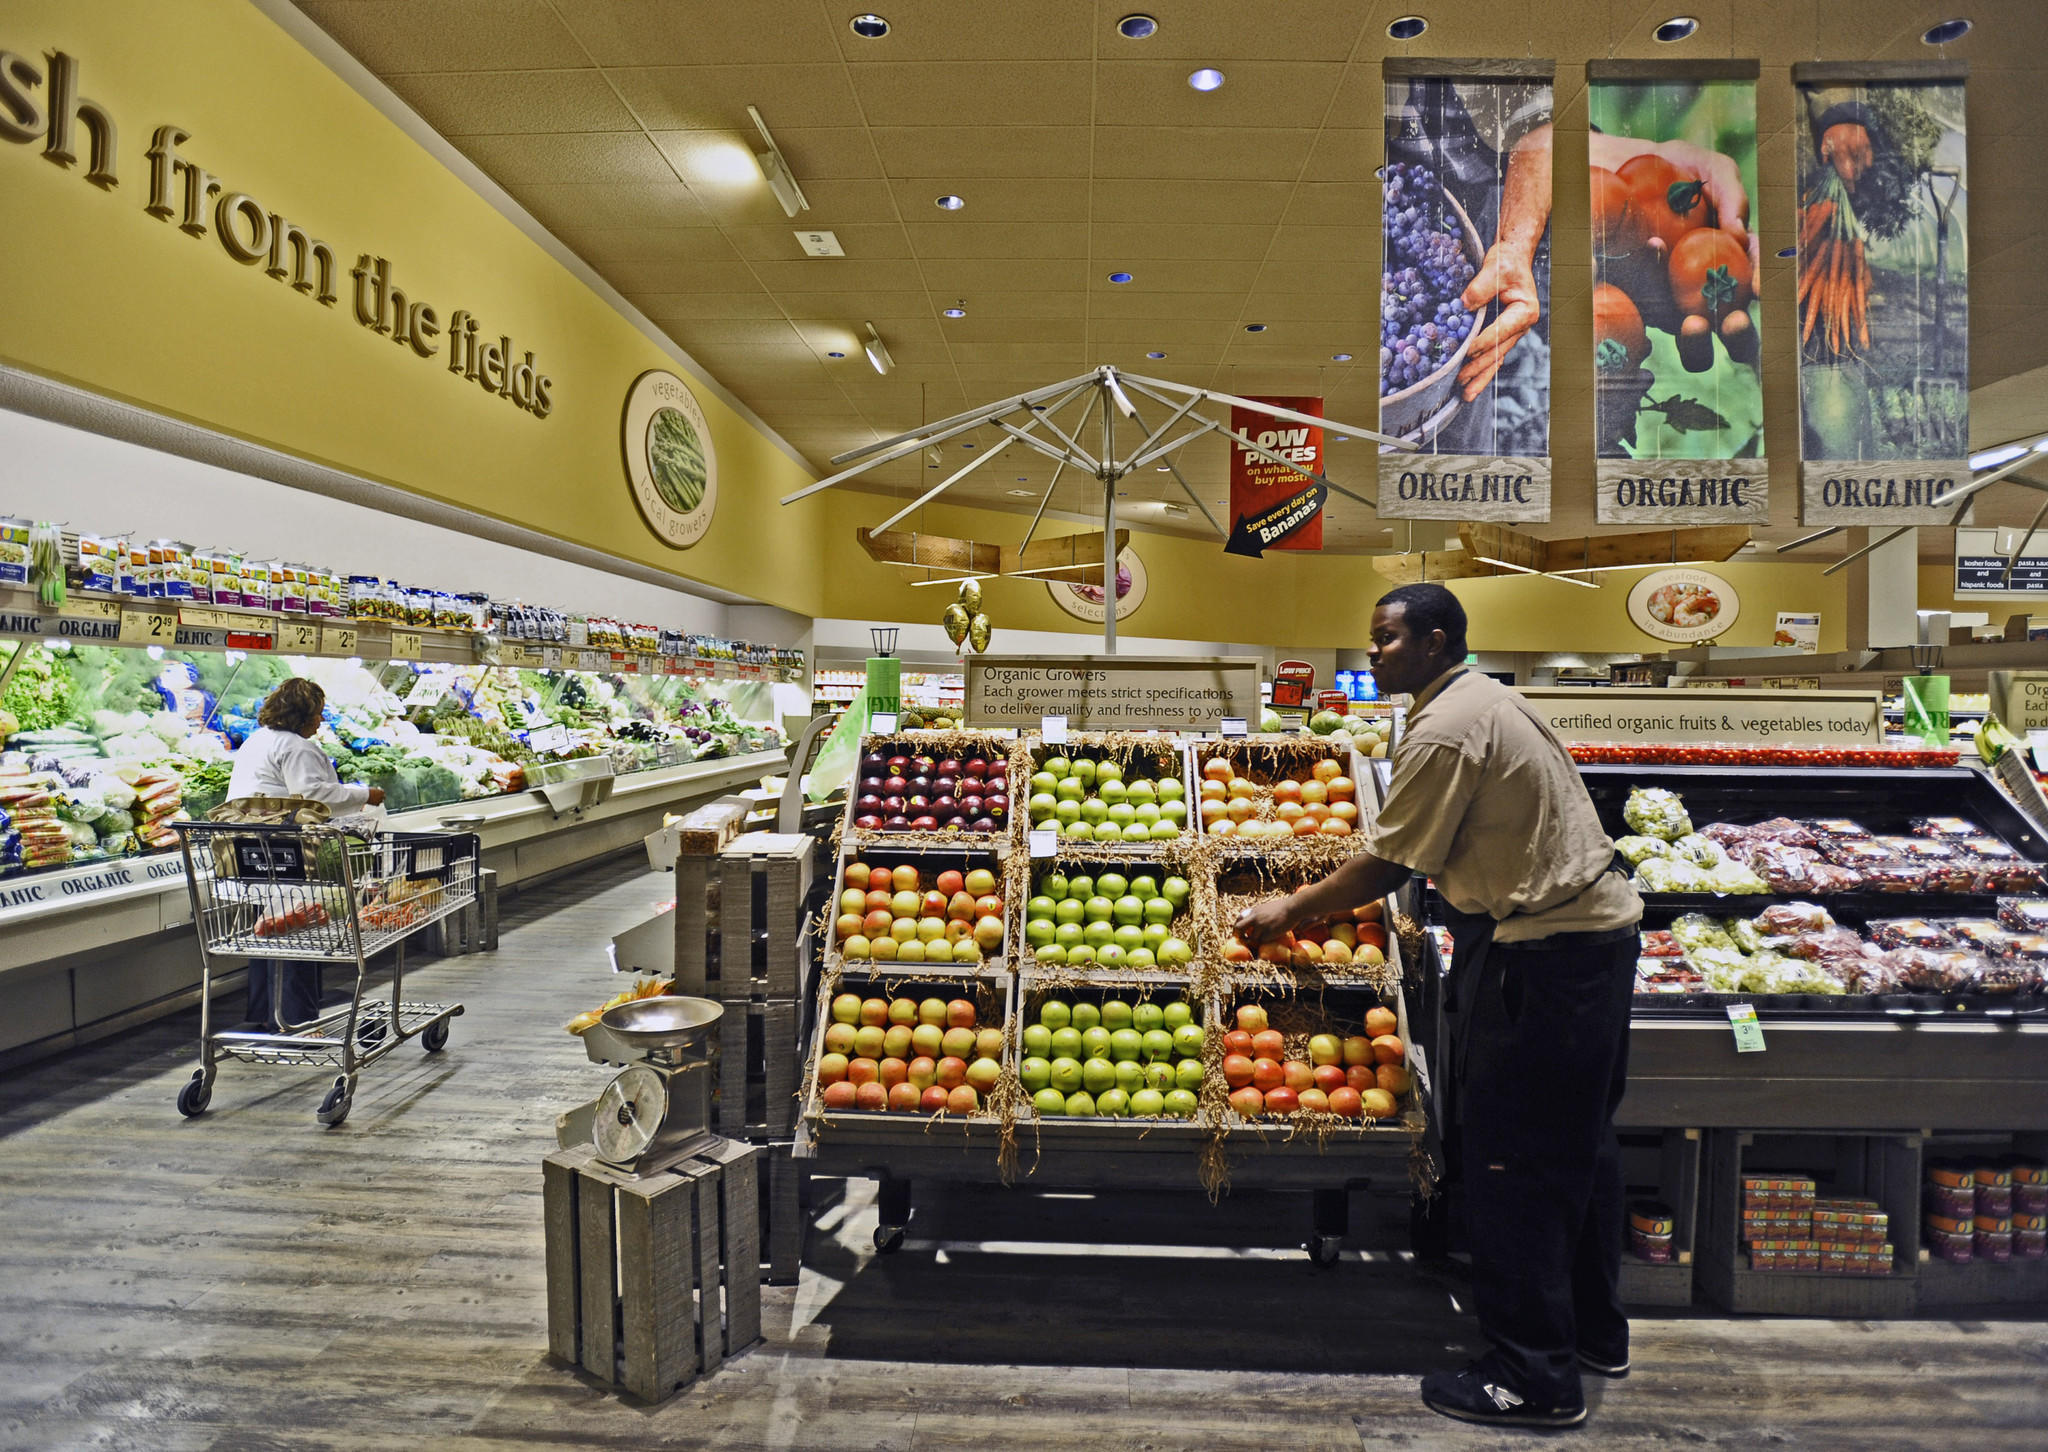 safeway supermarket Store_default km 190,125 icons/ddstartpinpng 2 icons/ddendpinpng use subject to terms and conditions.